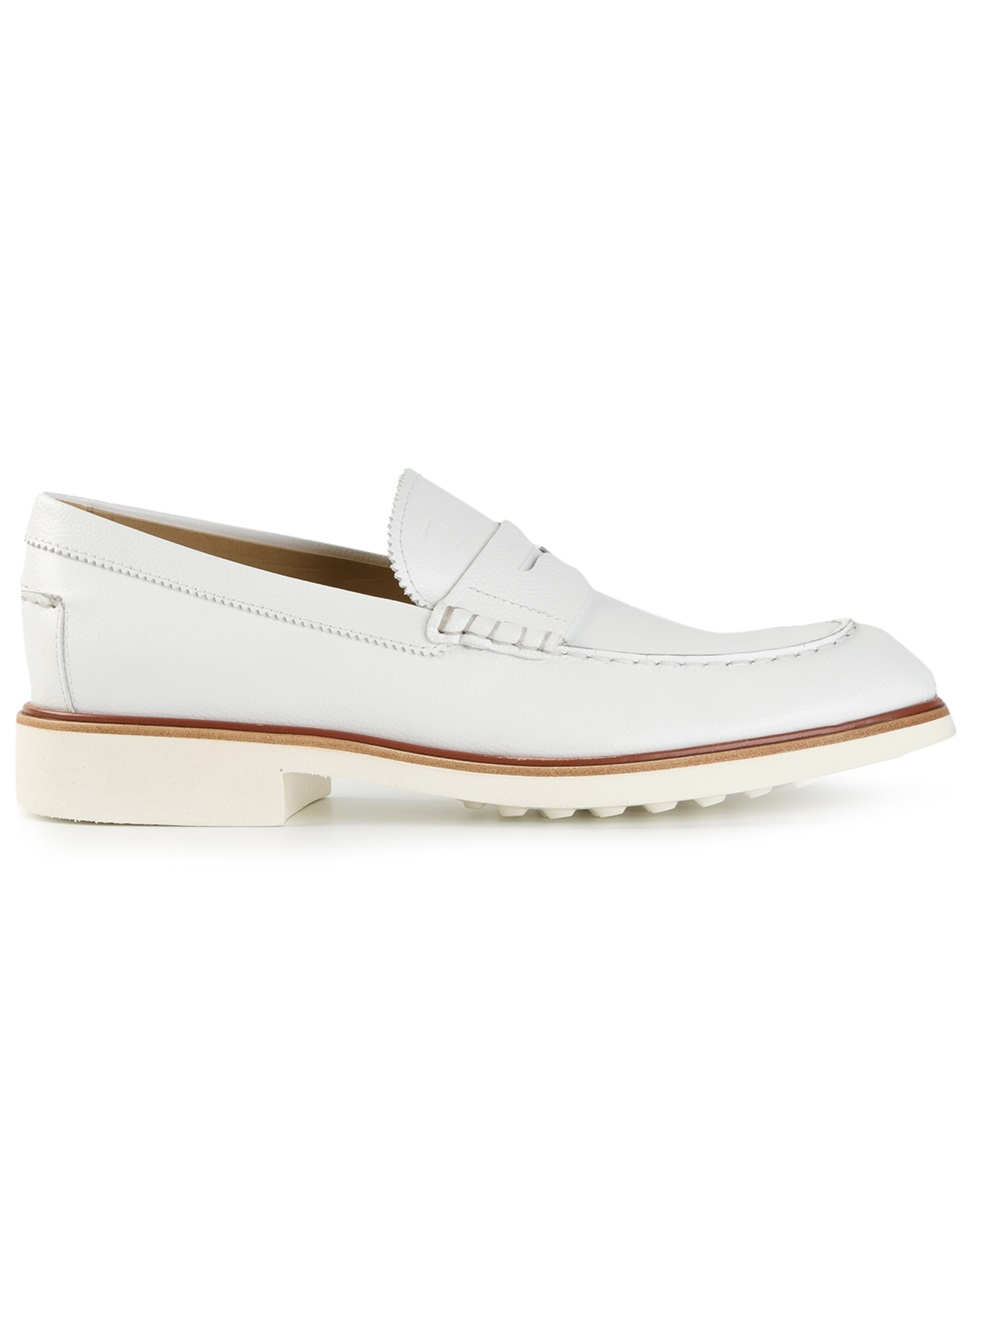 sports shoes 5d49c e0d1c tods-white-classic-penny-loafers-product-1-18680537-1-863251205-normal.jpeg